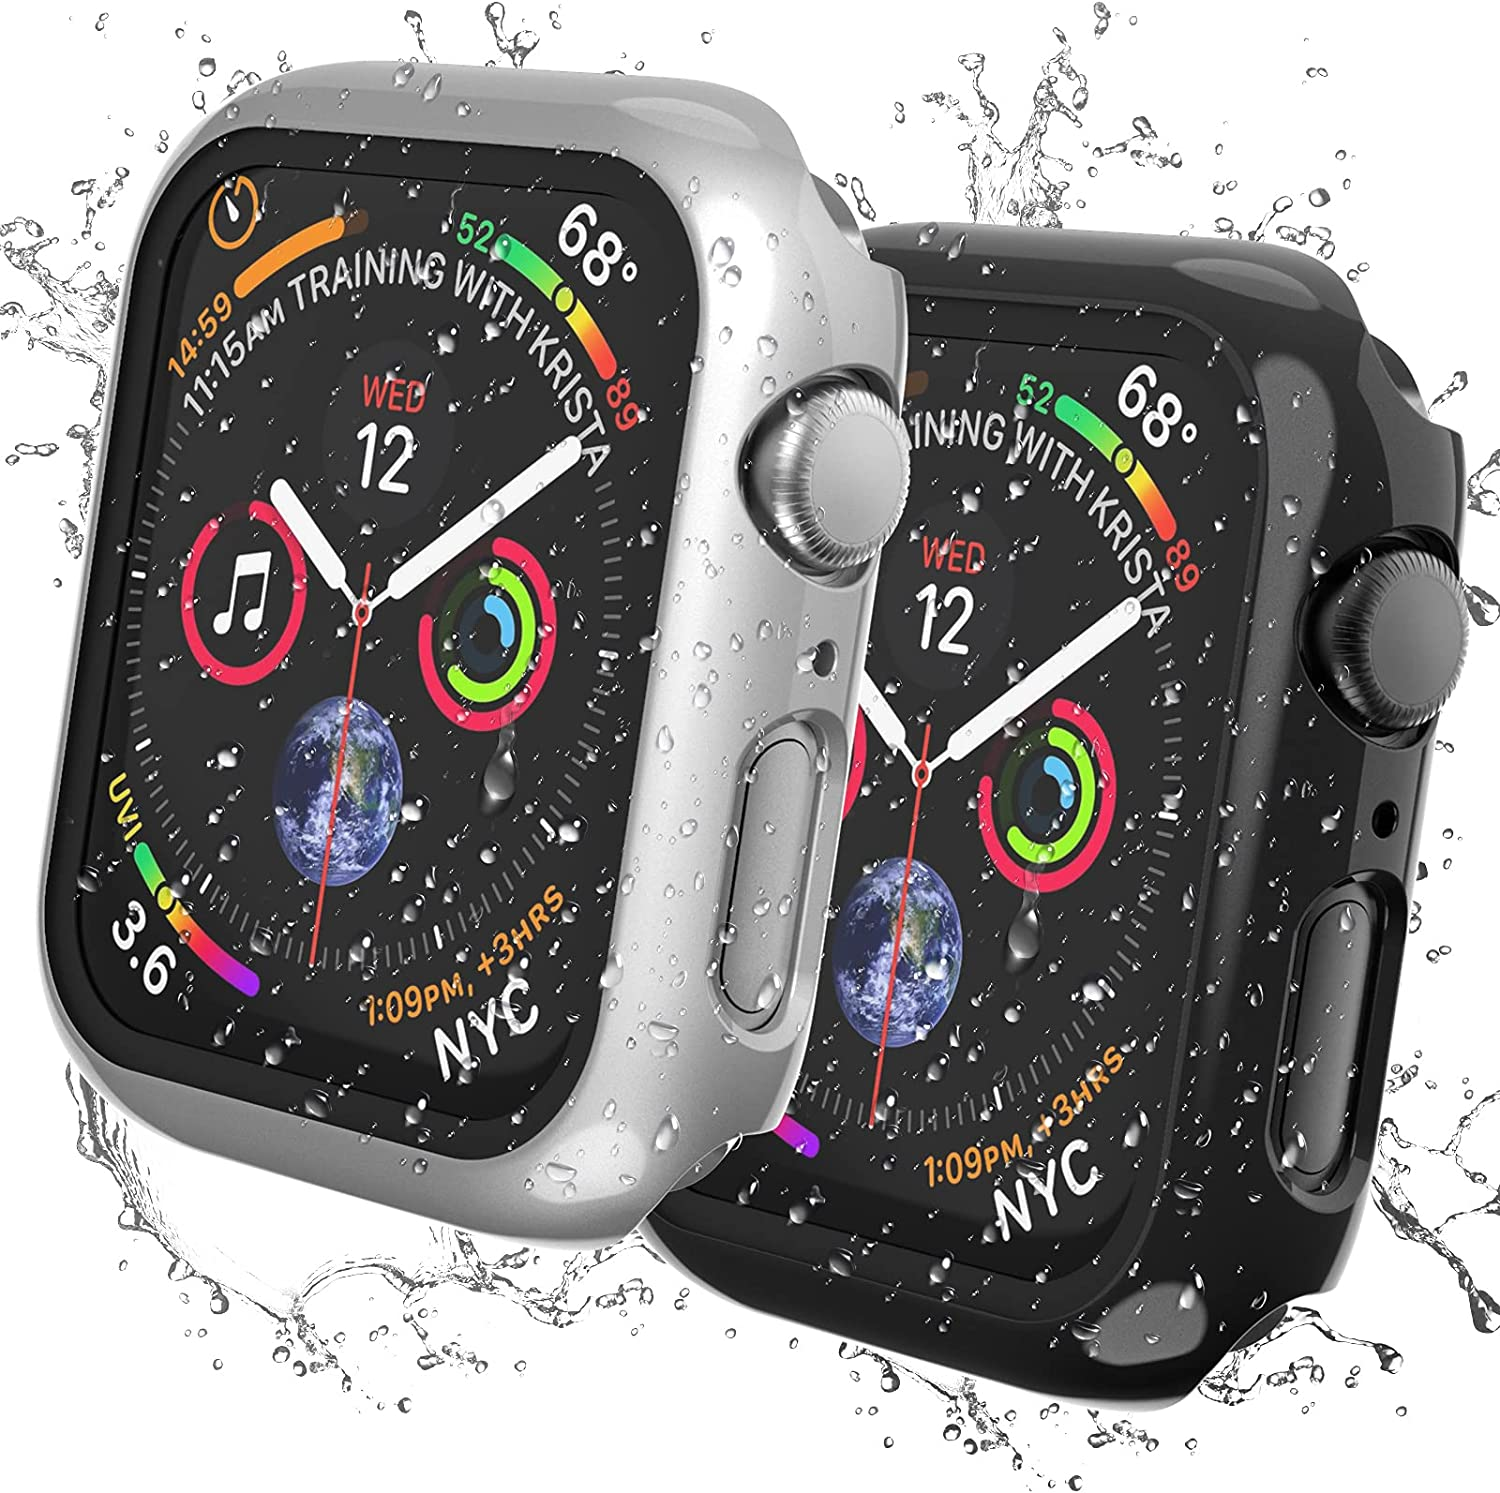 [2 Pack] AISIBY IPX7 Waterproof Case Compatible for Apple Watch Series 3/2/1 38mm with Screen Protector Accessories Guard Thin Bumper Full Coverage for iWatch Women Men (Black/Silver)